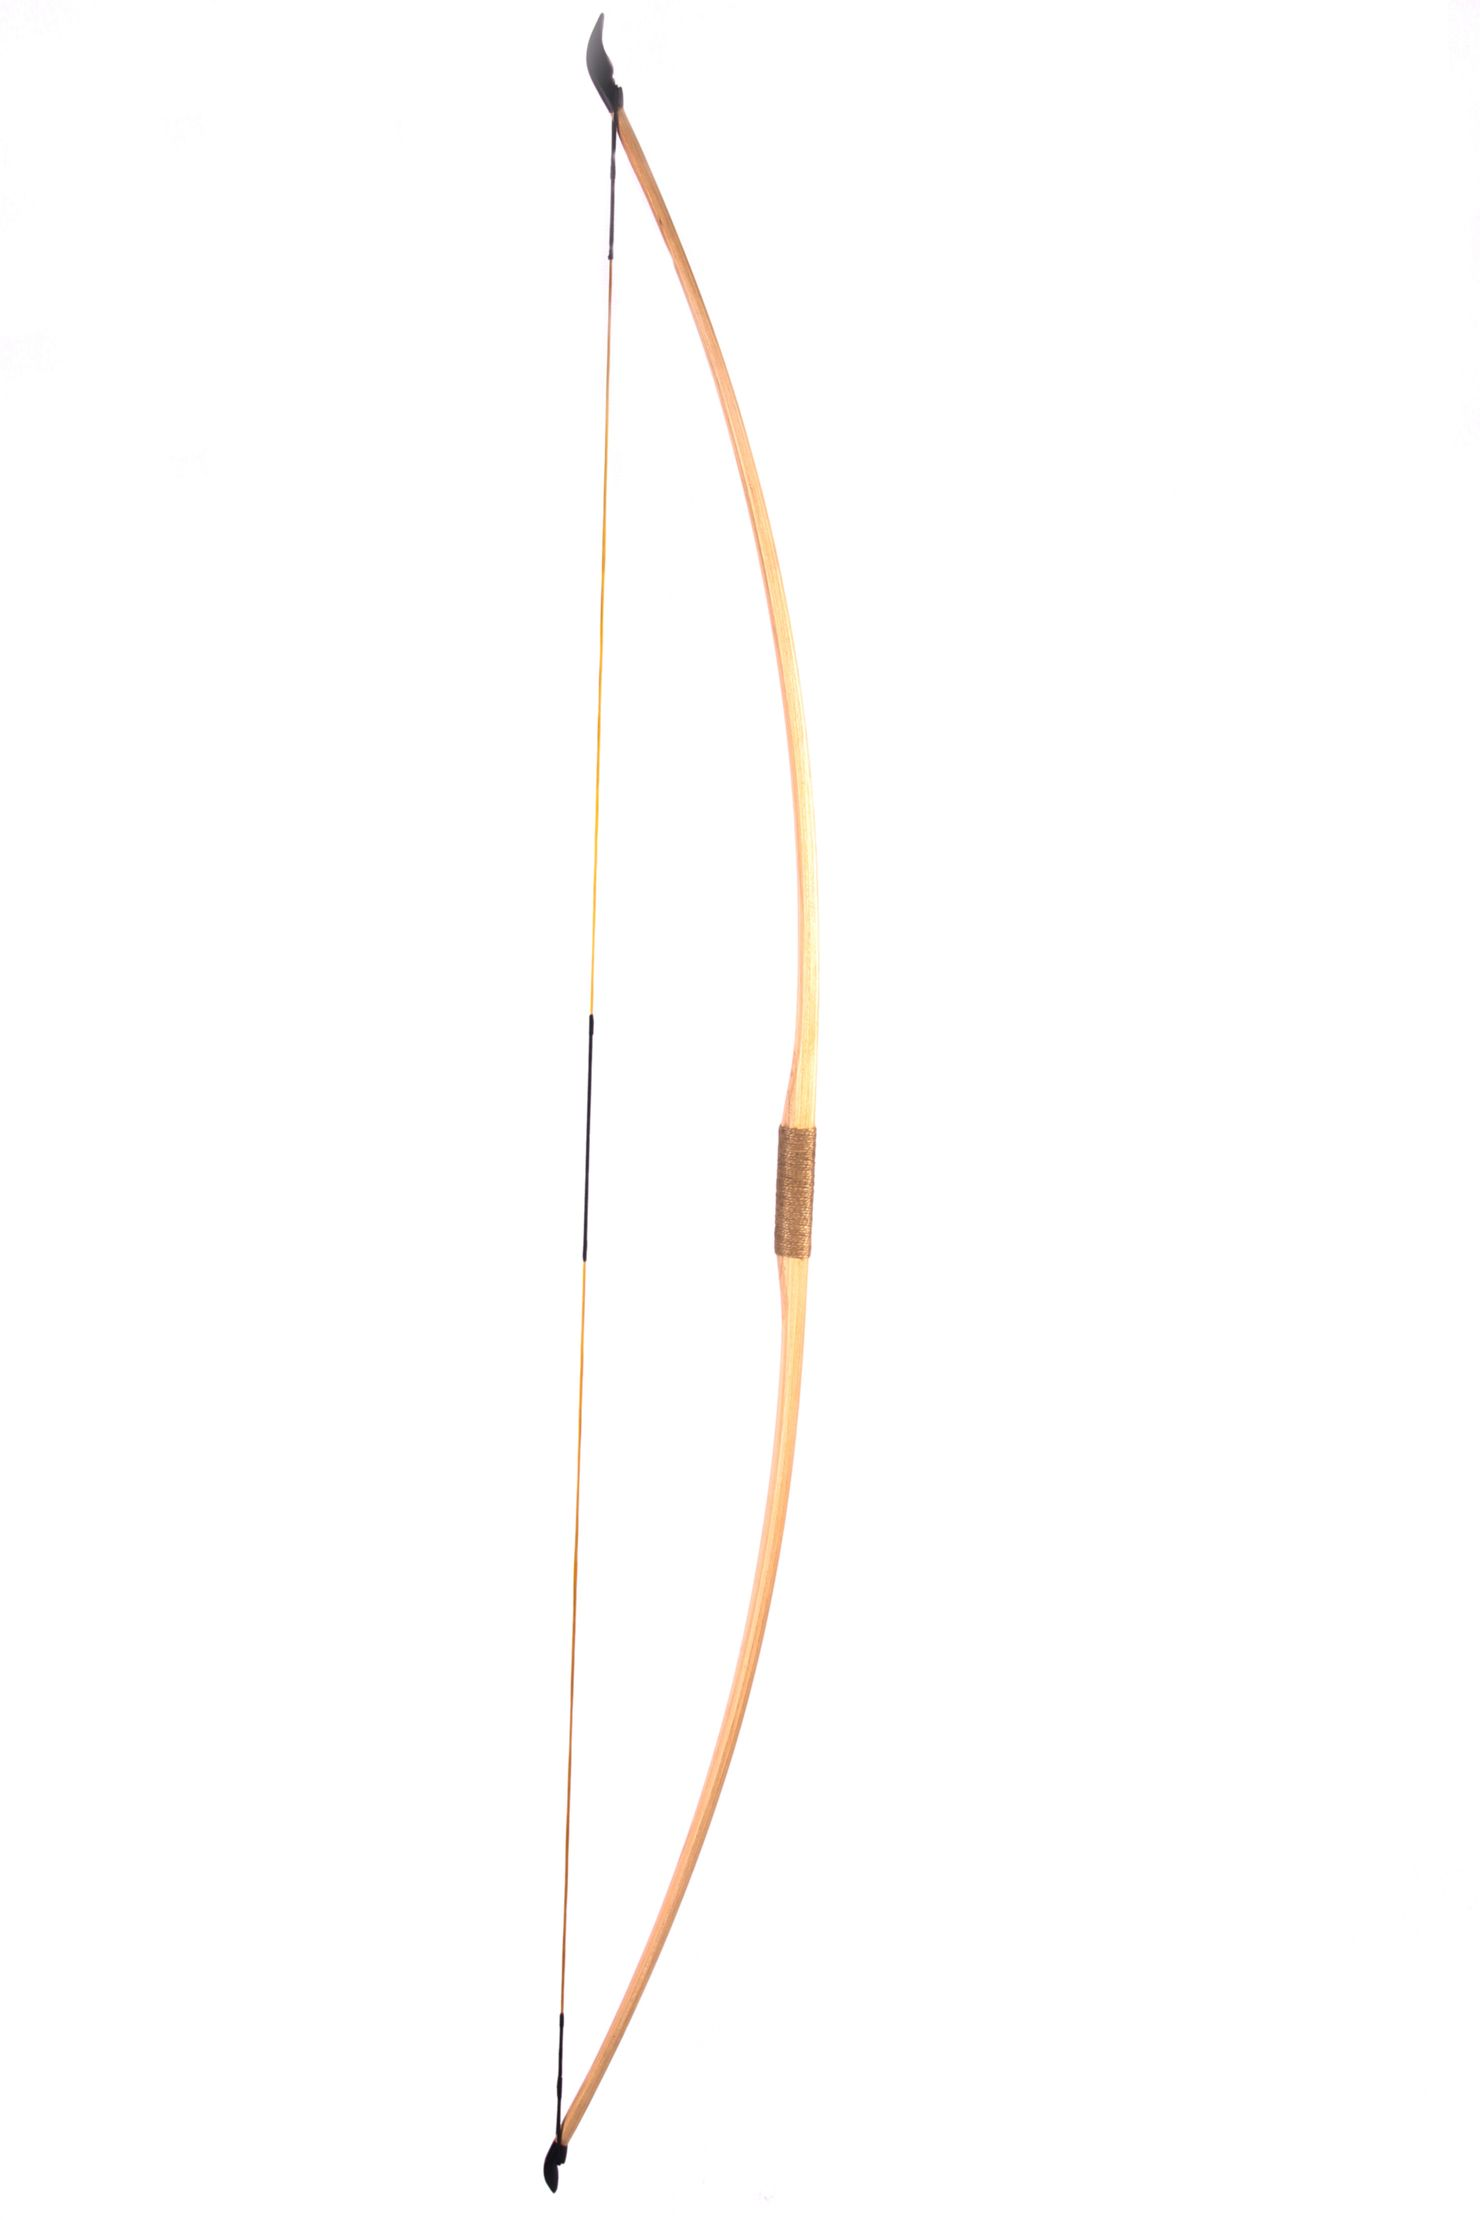 wooden bow with a taut bowstring on a white background